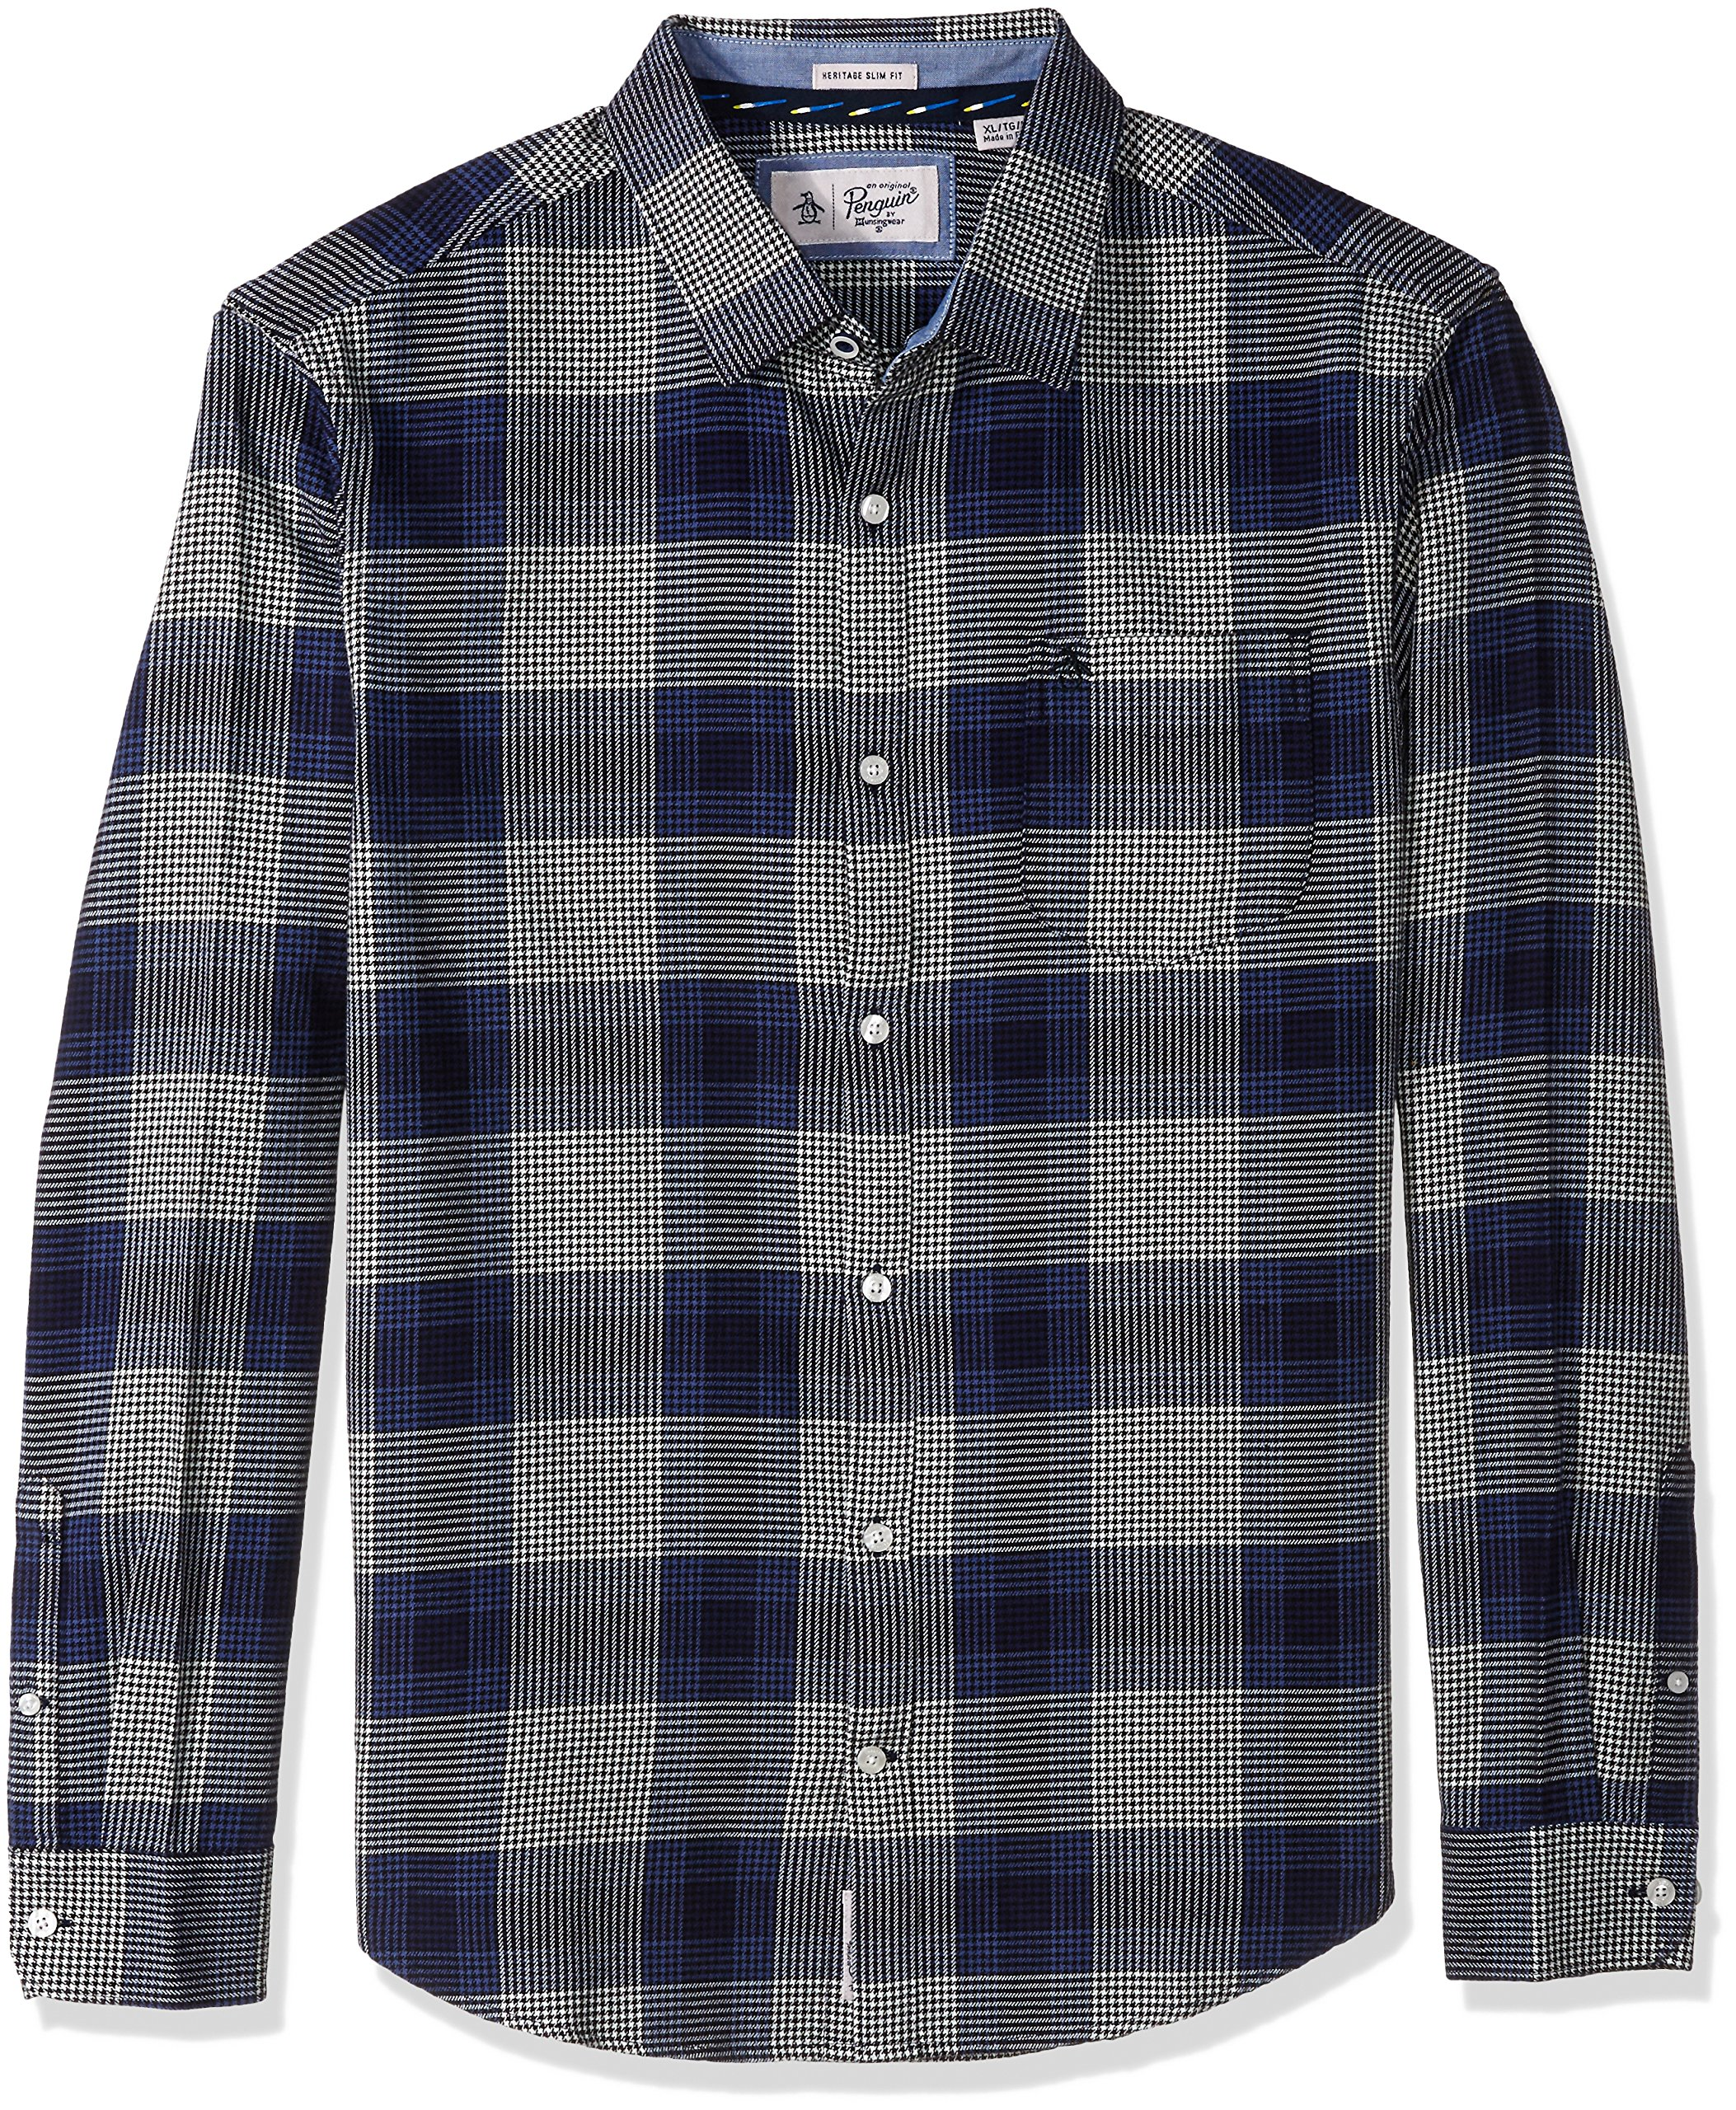 Original Penguin Men's Brushed Plaid Flannel Dress Shirt, Snorkel Blue, Large by Original Penguin (Image #1)